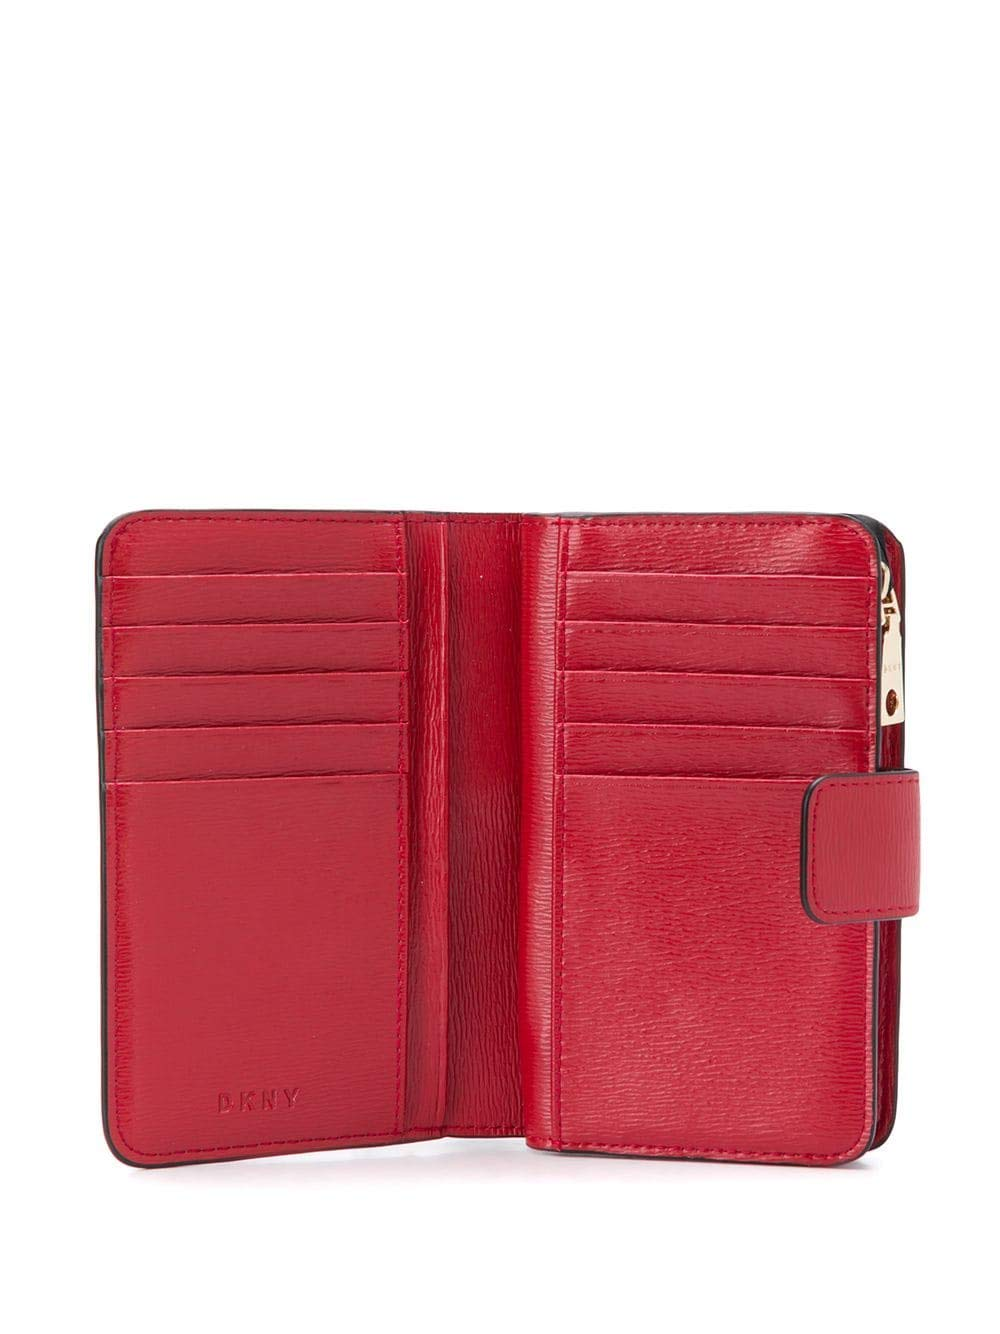 Cartera DKNY Mujer Karan New York R8313659 8rd Bright Red ...